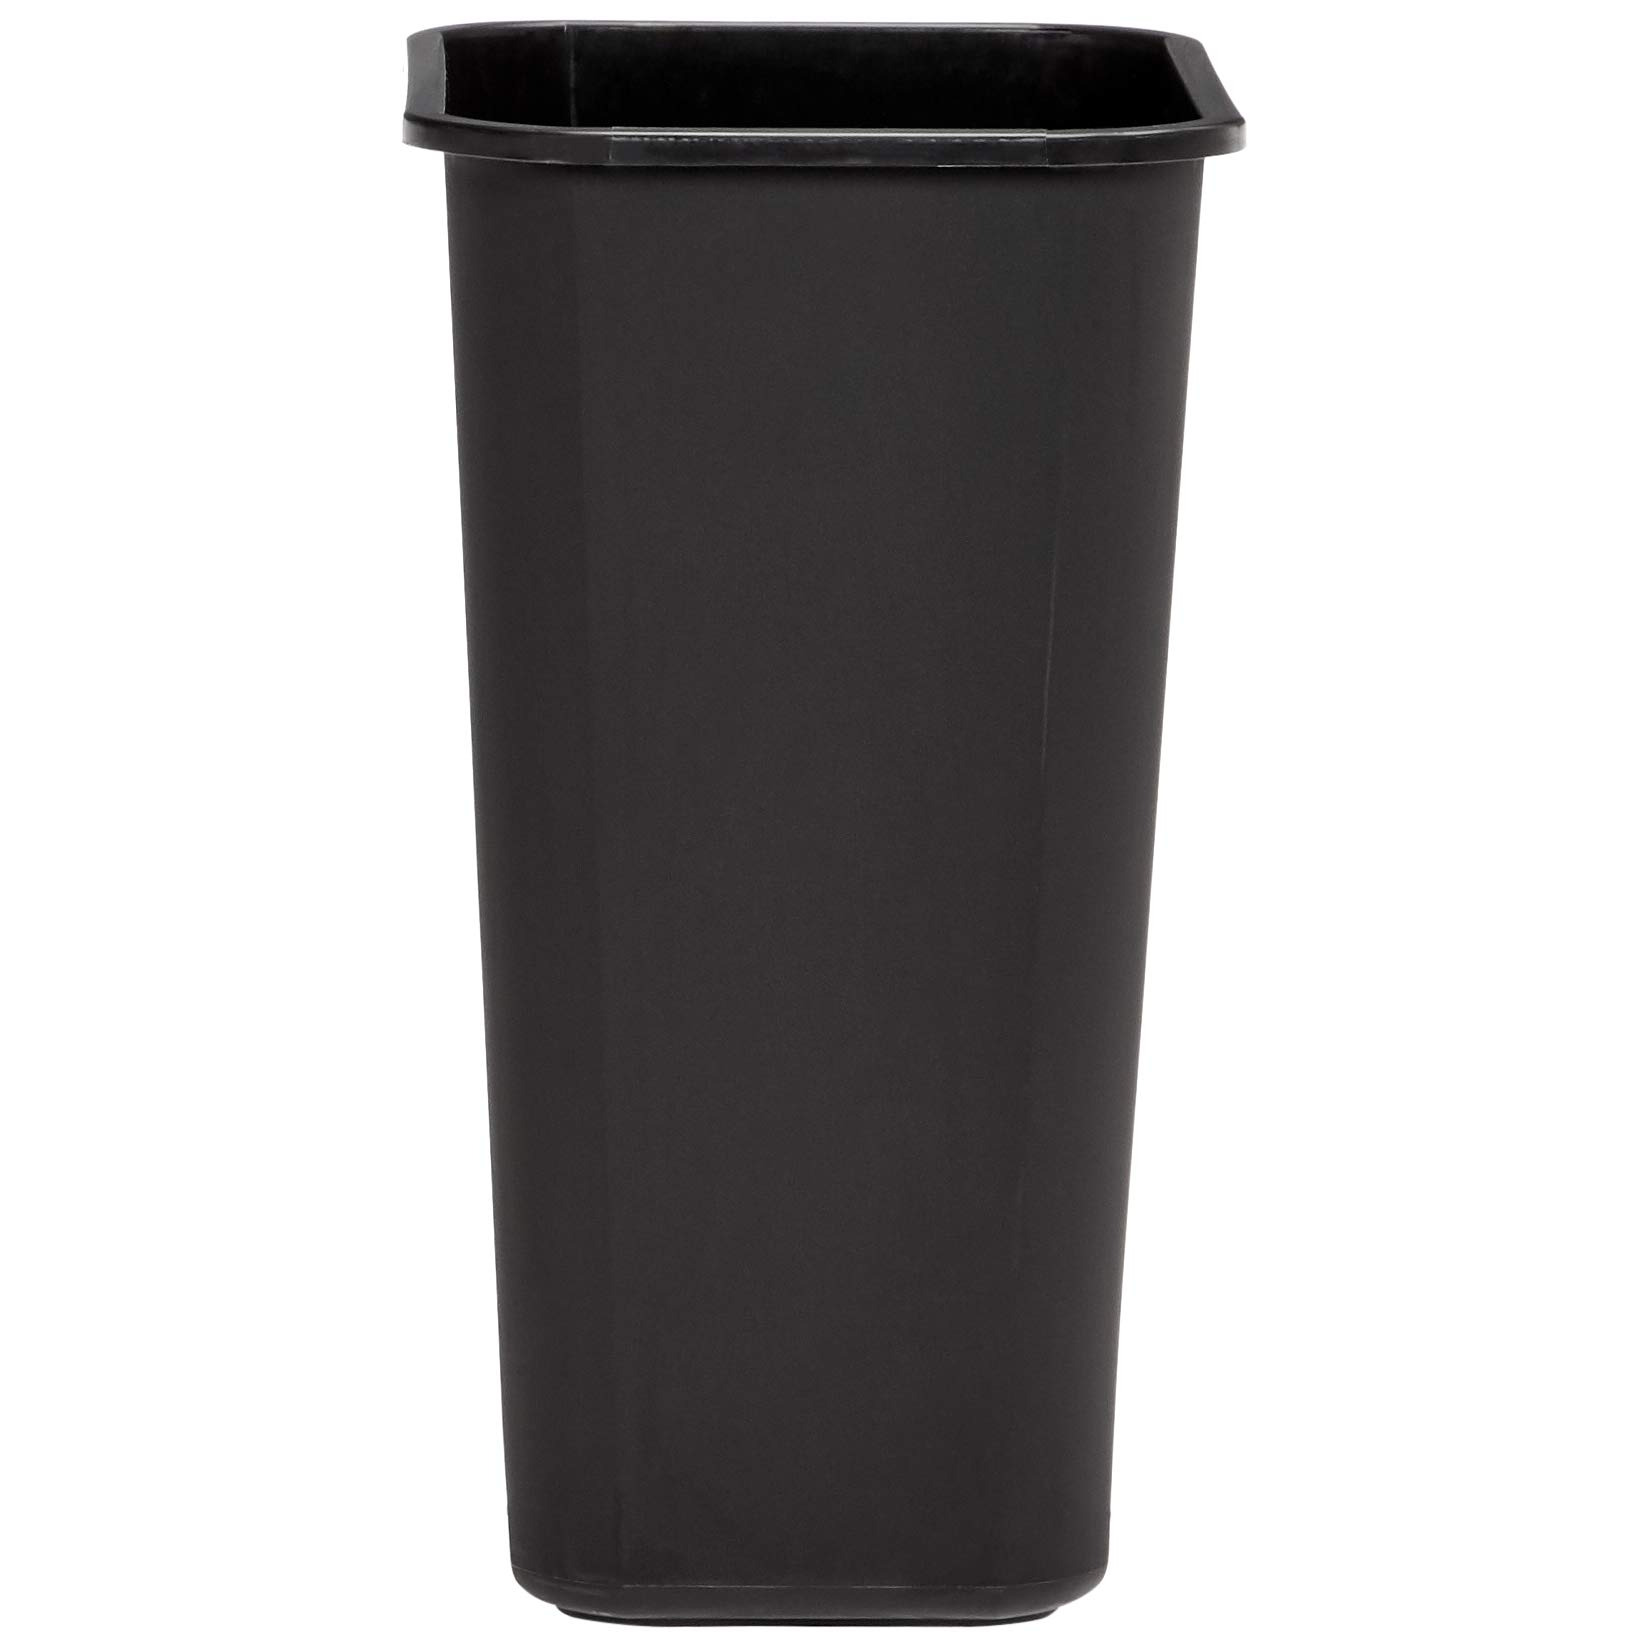 AmazonBasics 10 Gallon Commercial Waste Basket, Black, 12-Pack - WMG-00037 by AmazonBasics (Image #5)